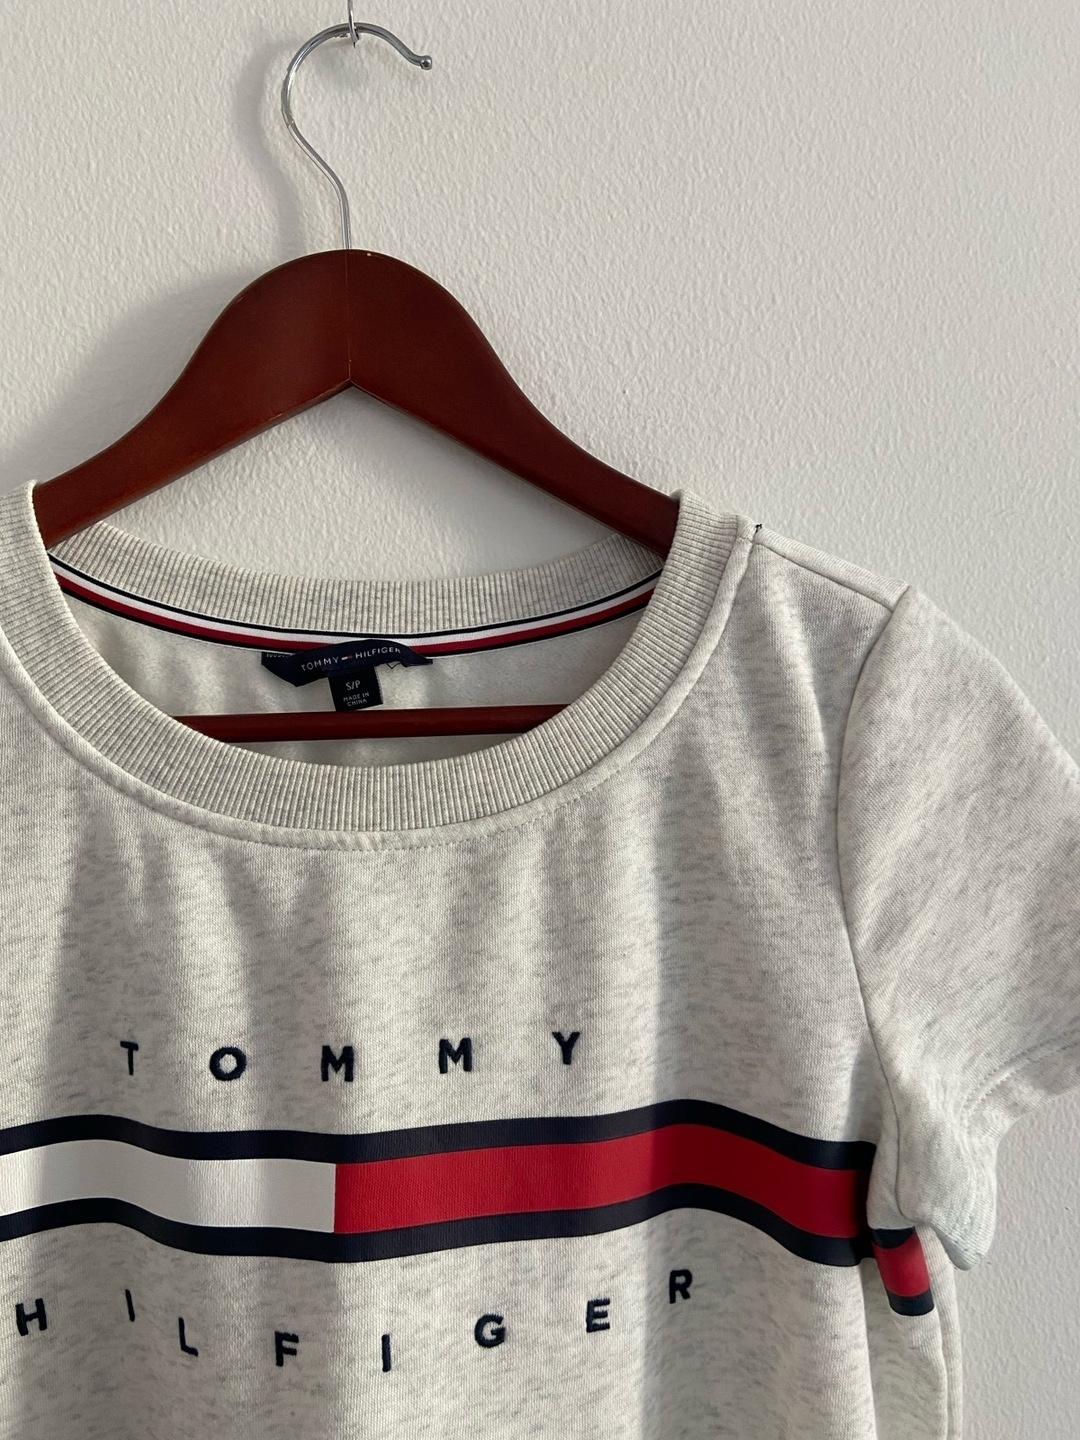 Women's dresses - TOMMY HILFIGER photo 4